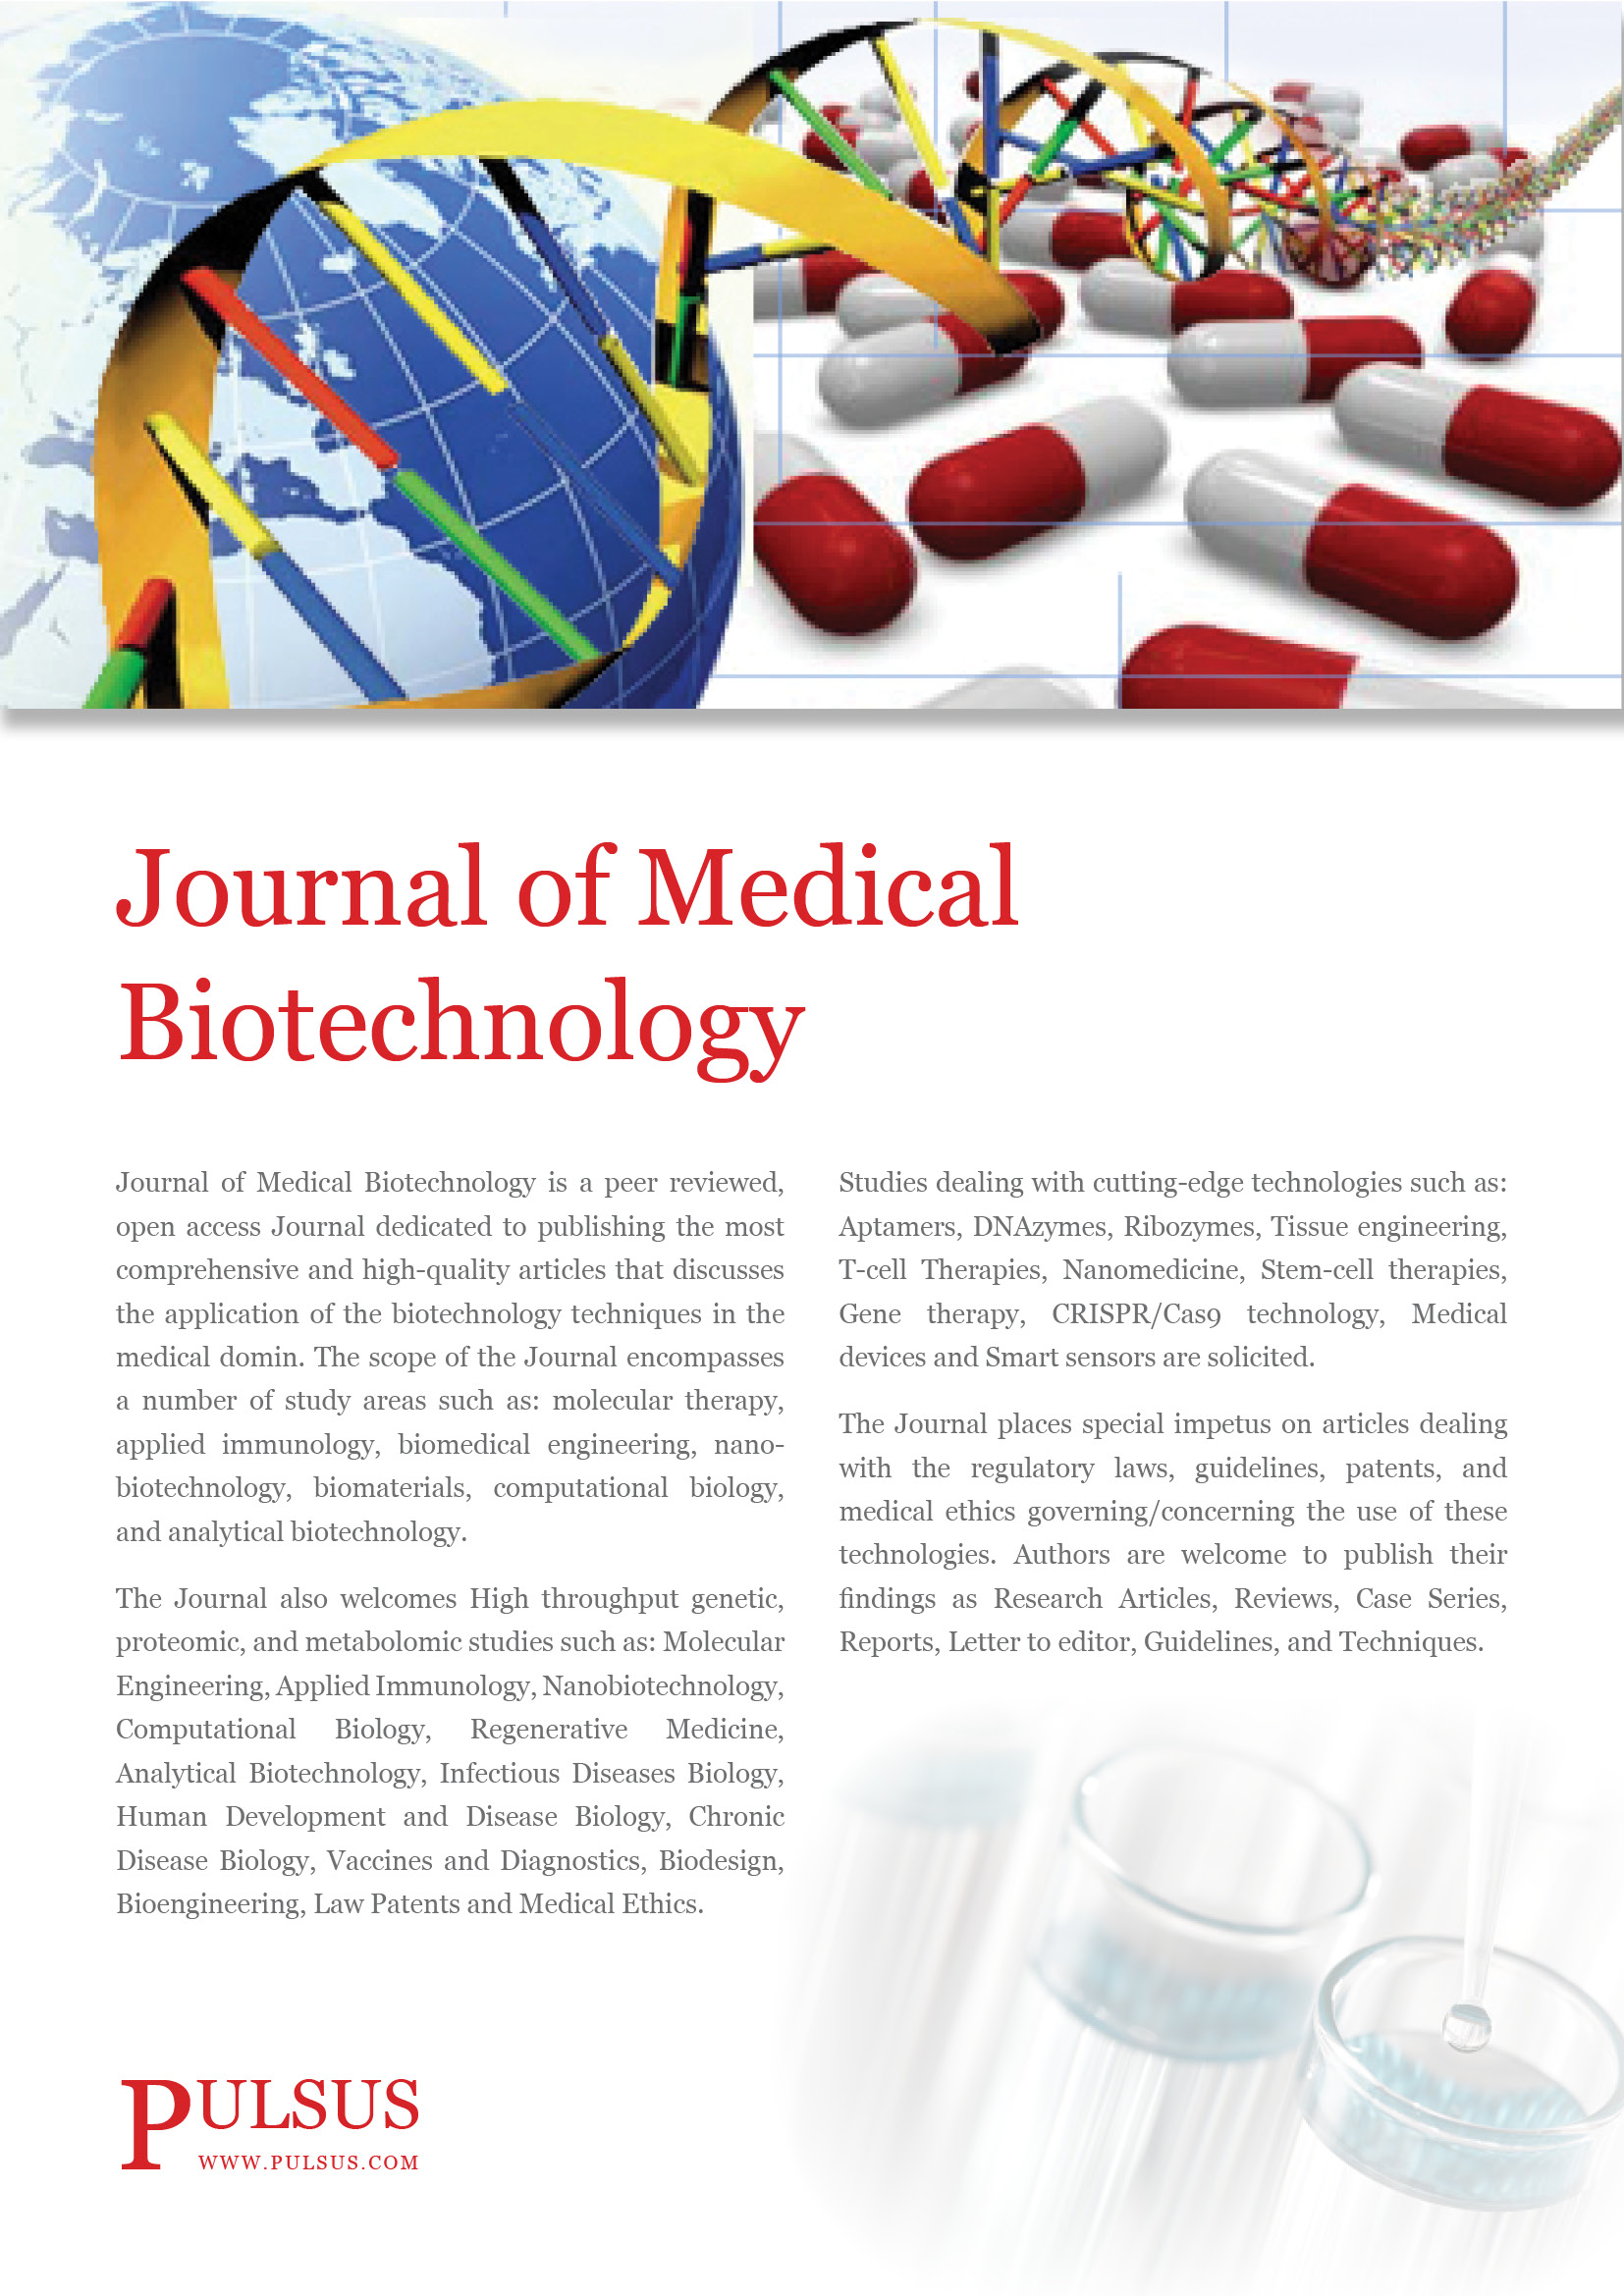 019 Journal Of Medical Biotechnology Flyer Research Paper Papers Pdf Free Impressive Download Full